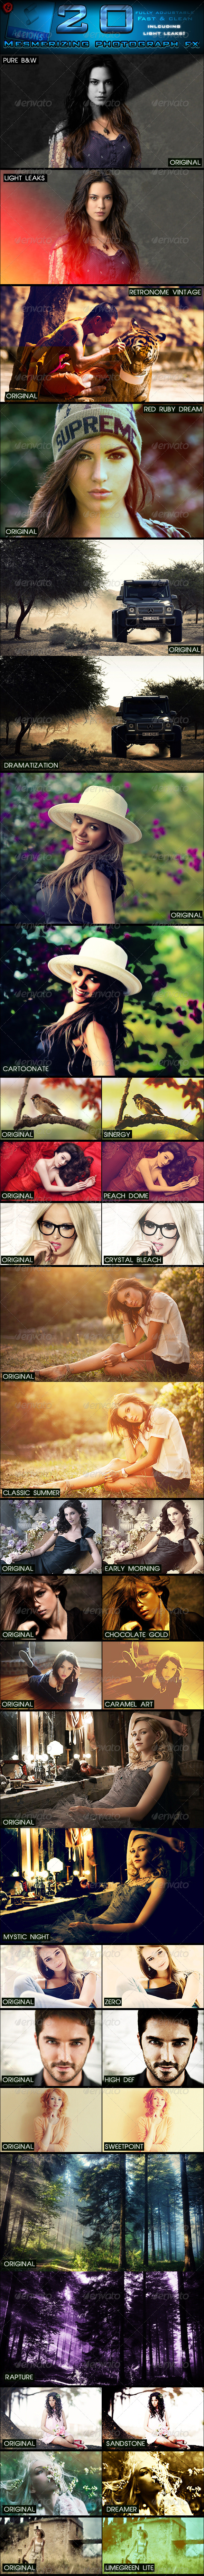 GraphicRiver 20 Photograph FX 4418719